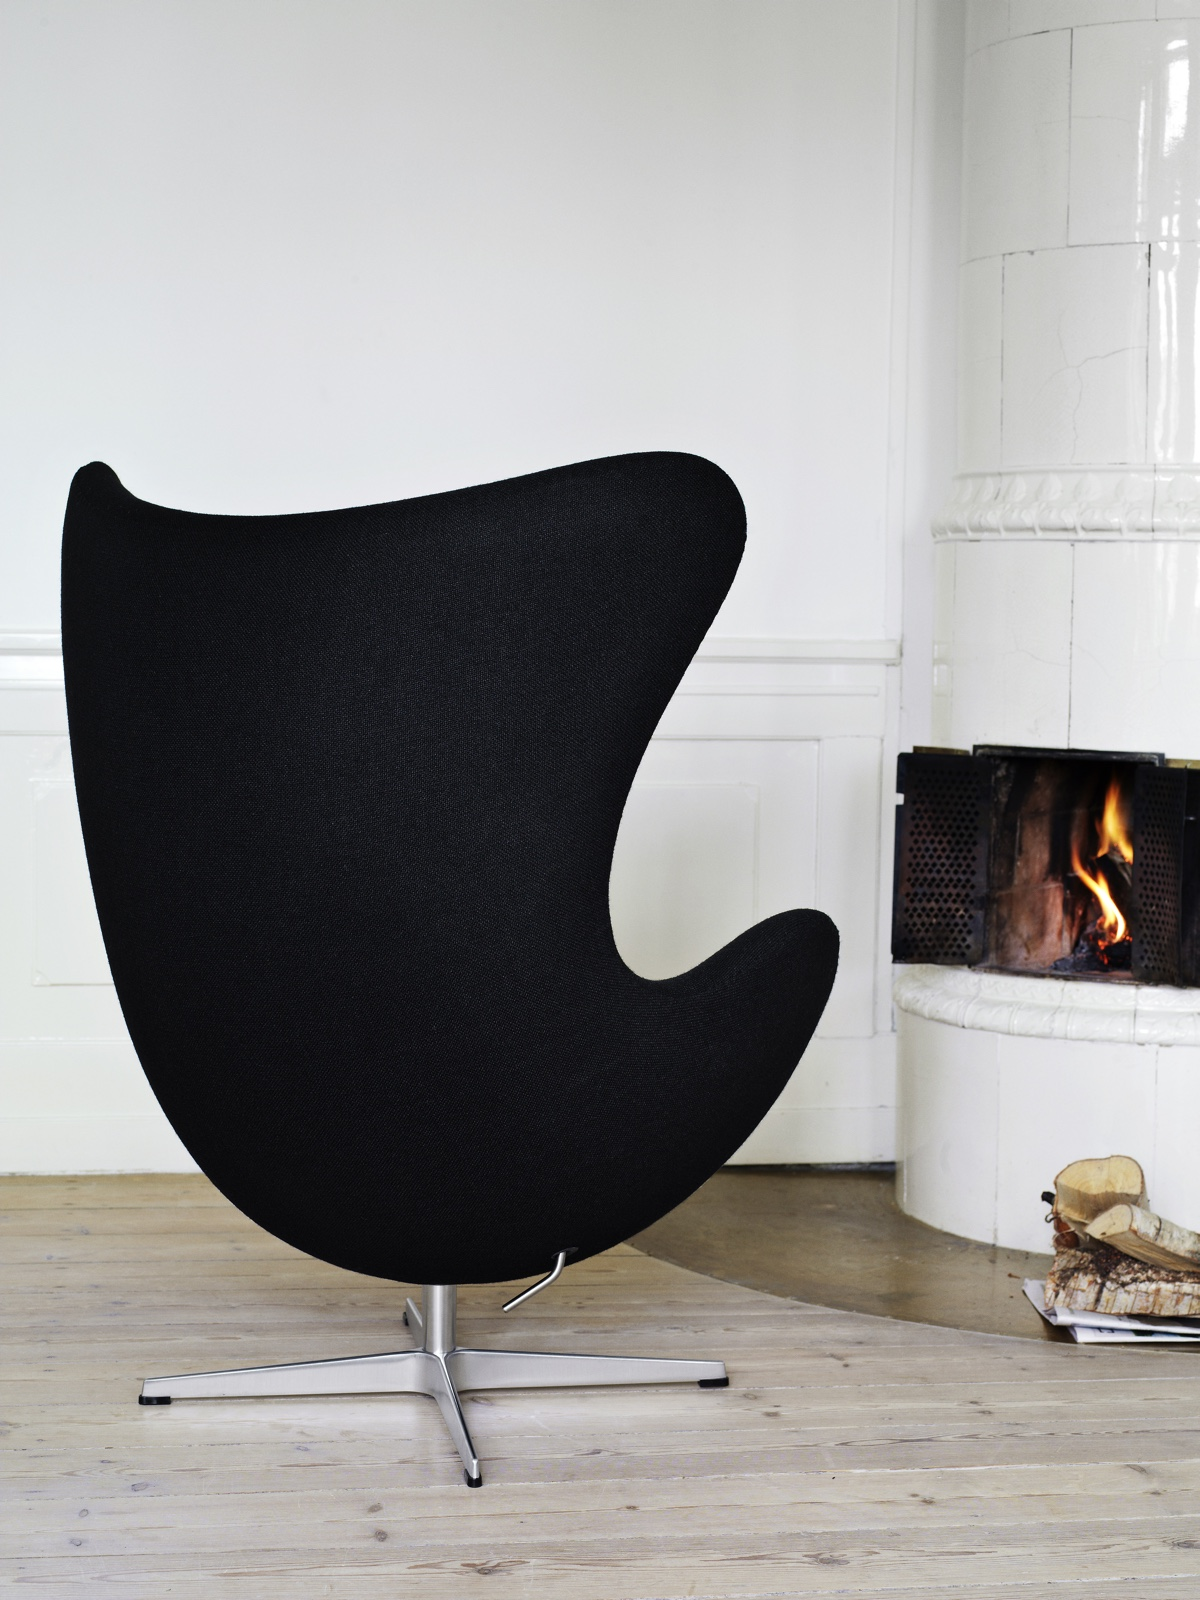 The Egg™ chair in a private home setting.